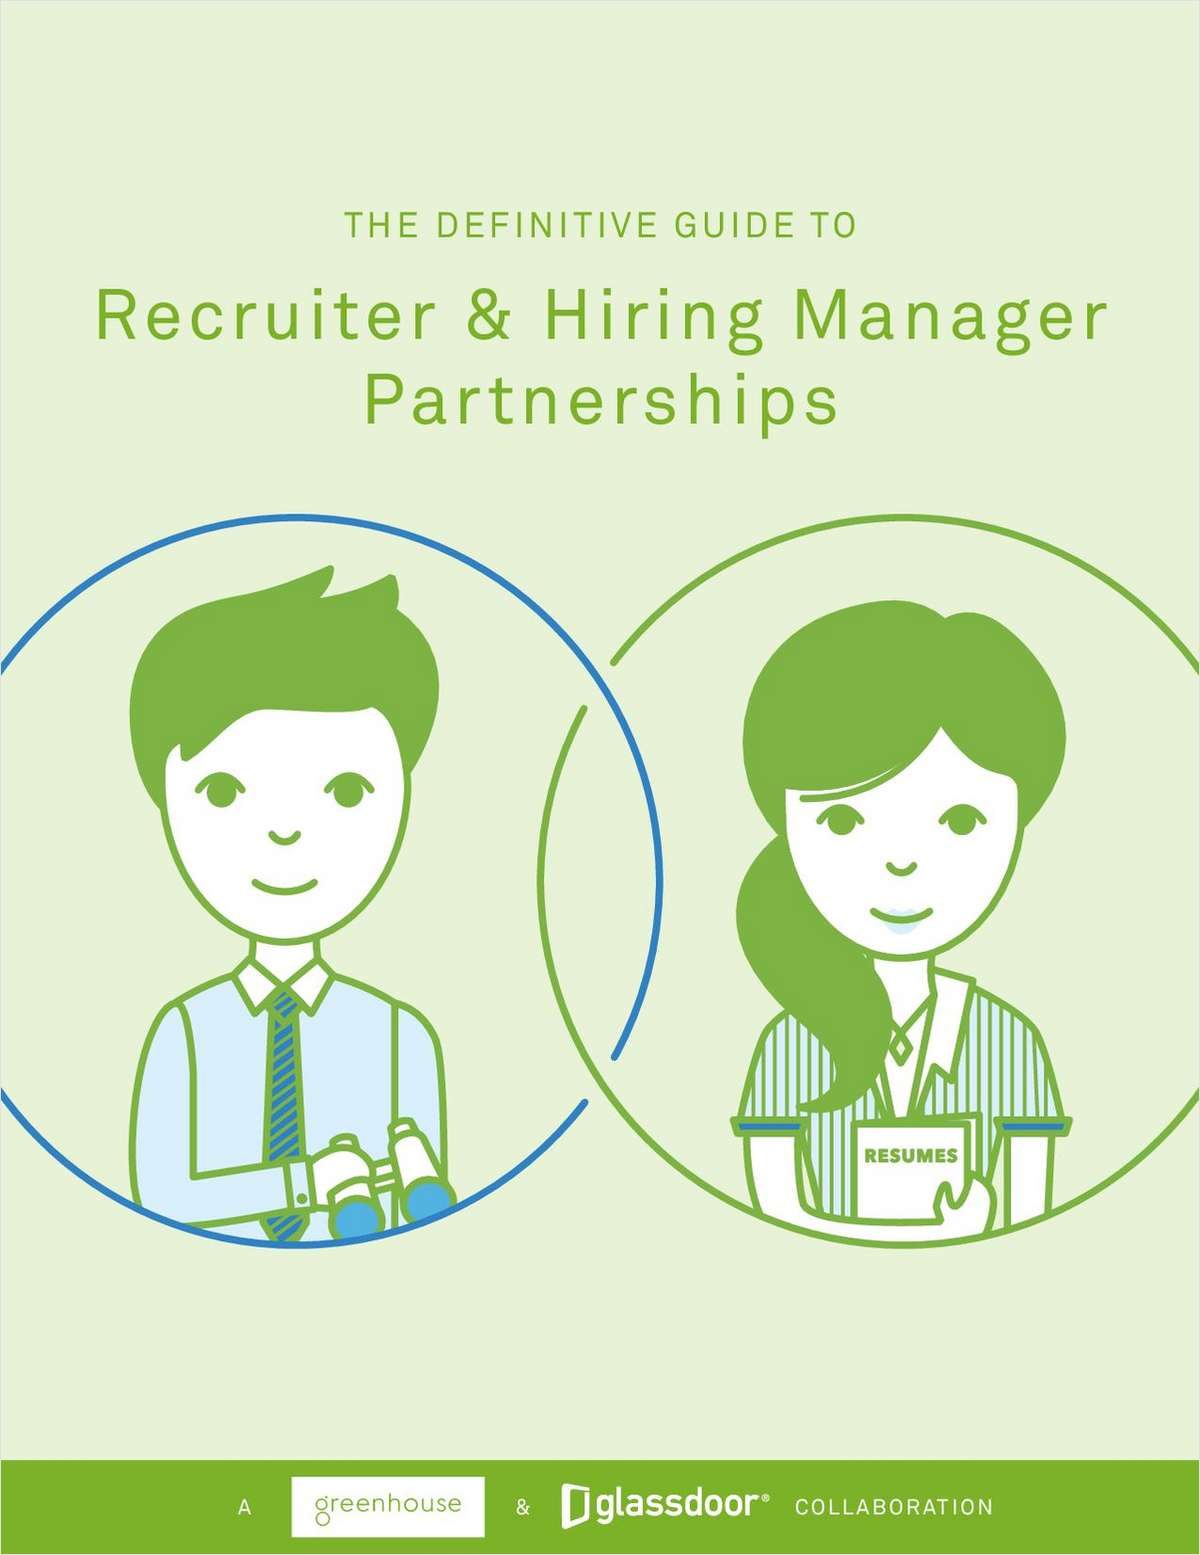 Your Ultimate Guide for Recruiter & Hiring Manager Partnerships